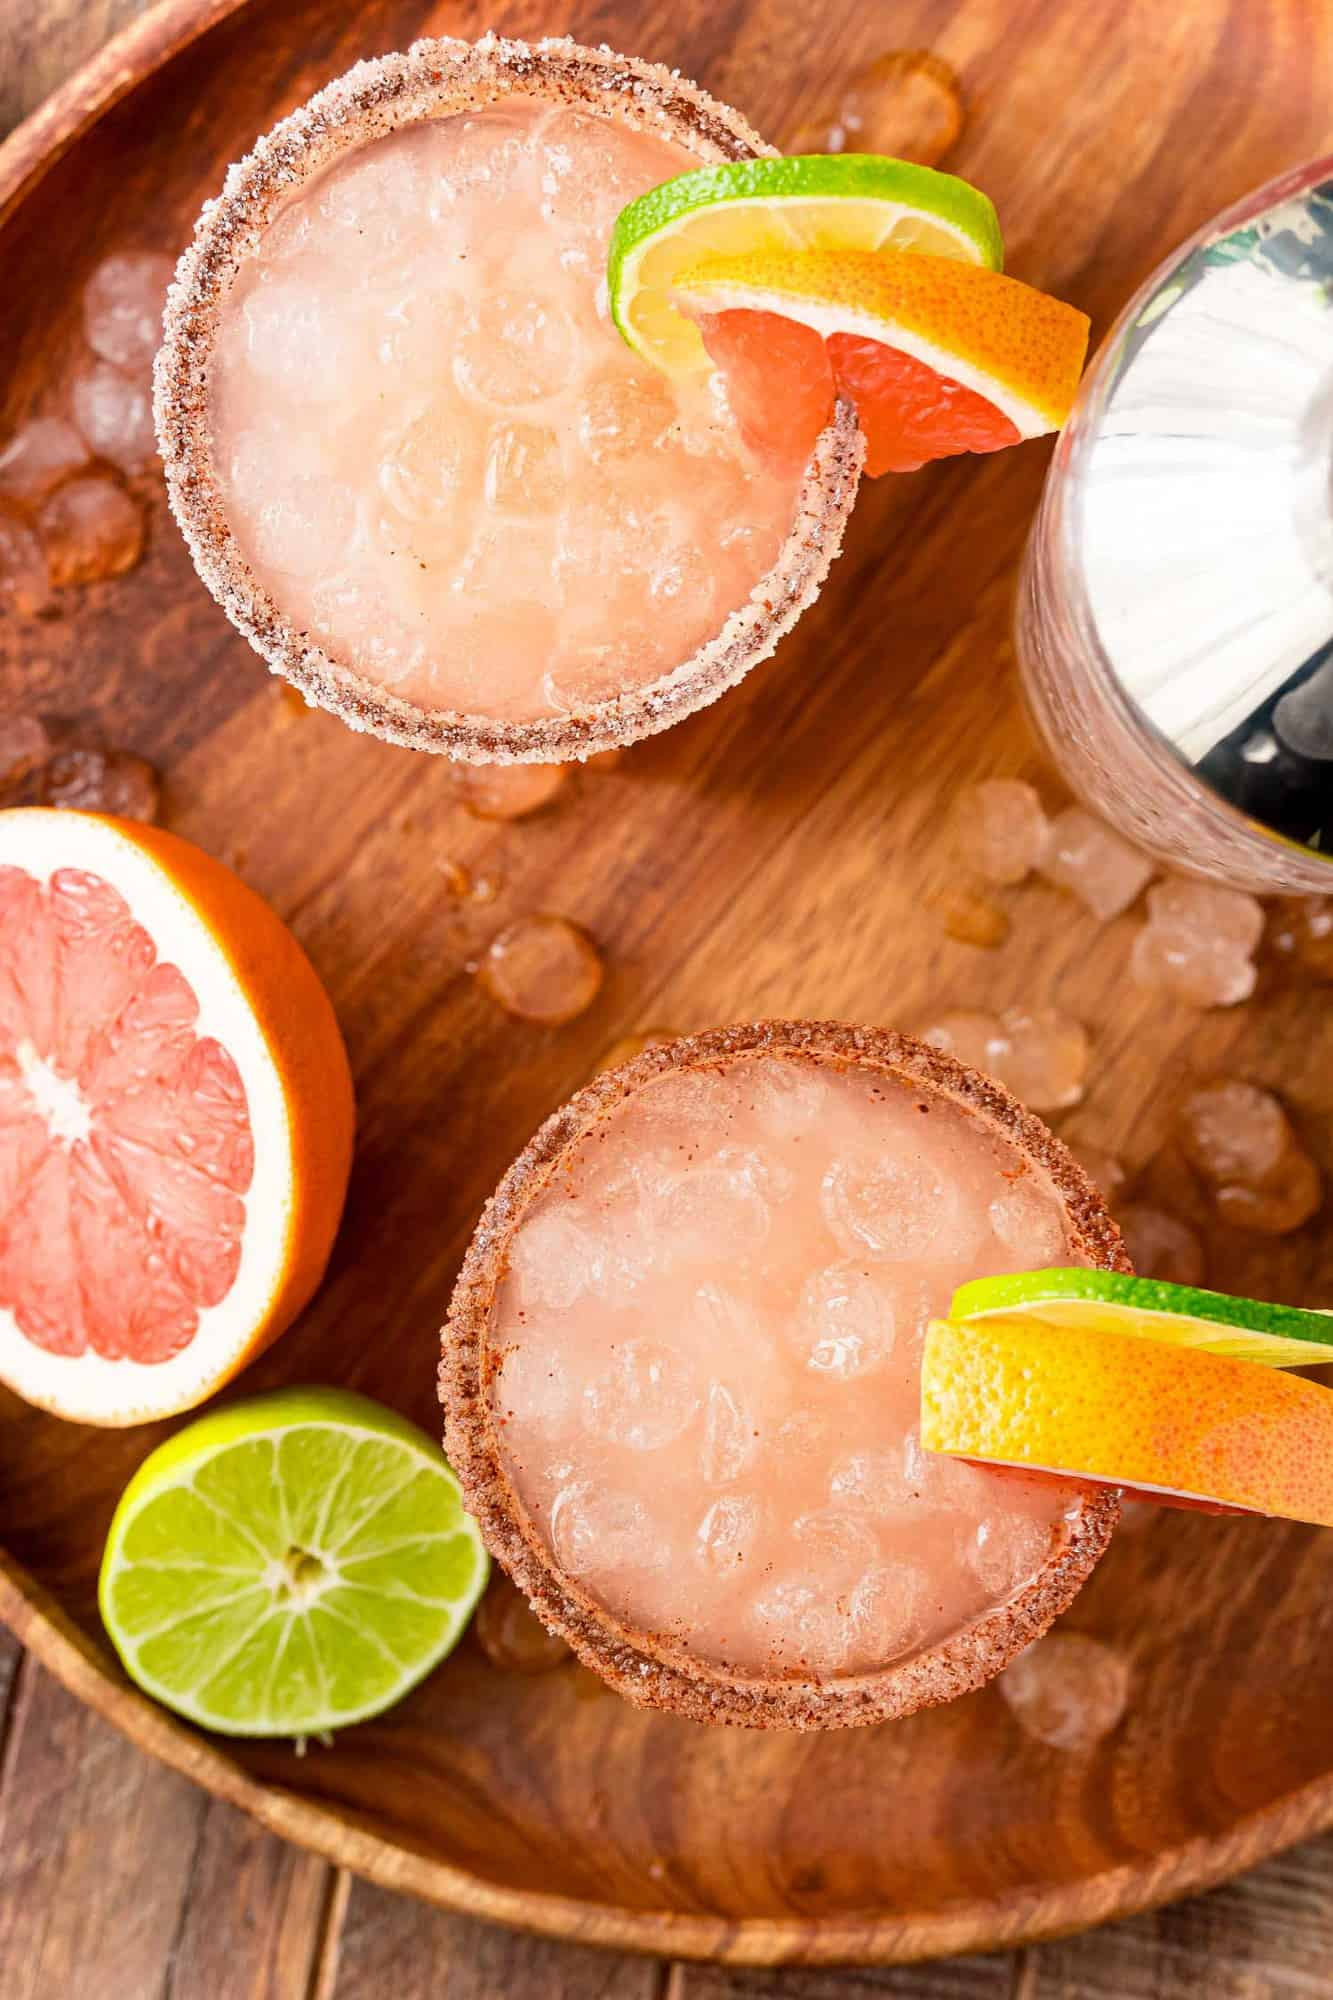 Overhead view of two paloma cocktails served on ice.